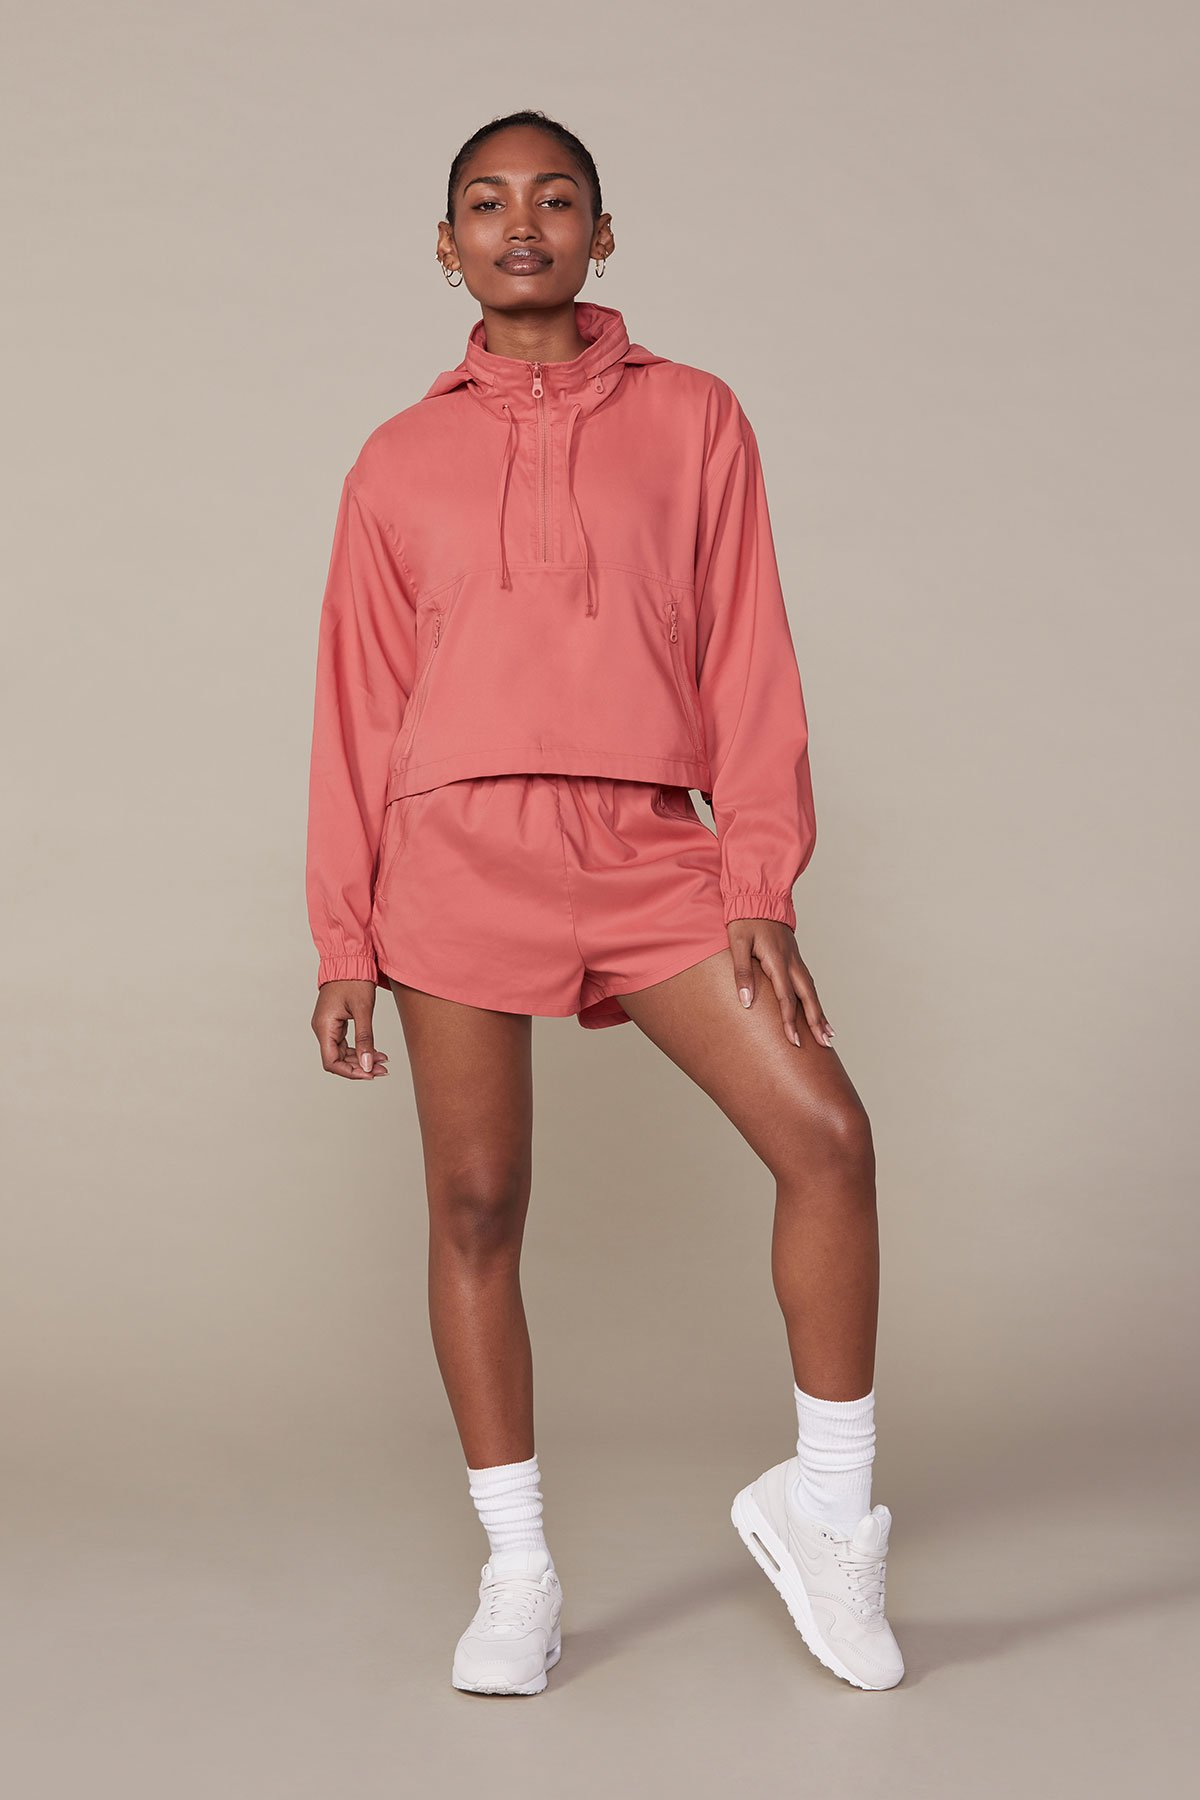 Girlfriend Collective - Clay Hummingbird Half Zip Windbreaker / $118.00Made from 34 plastic water bottles, this windbreaker is not only great for the environment; it's totally adorable to throw on after the gym.